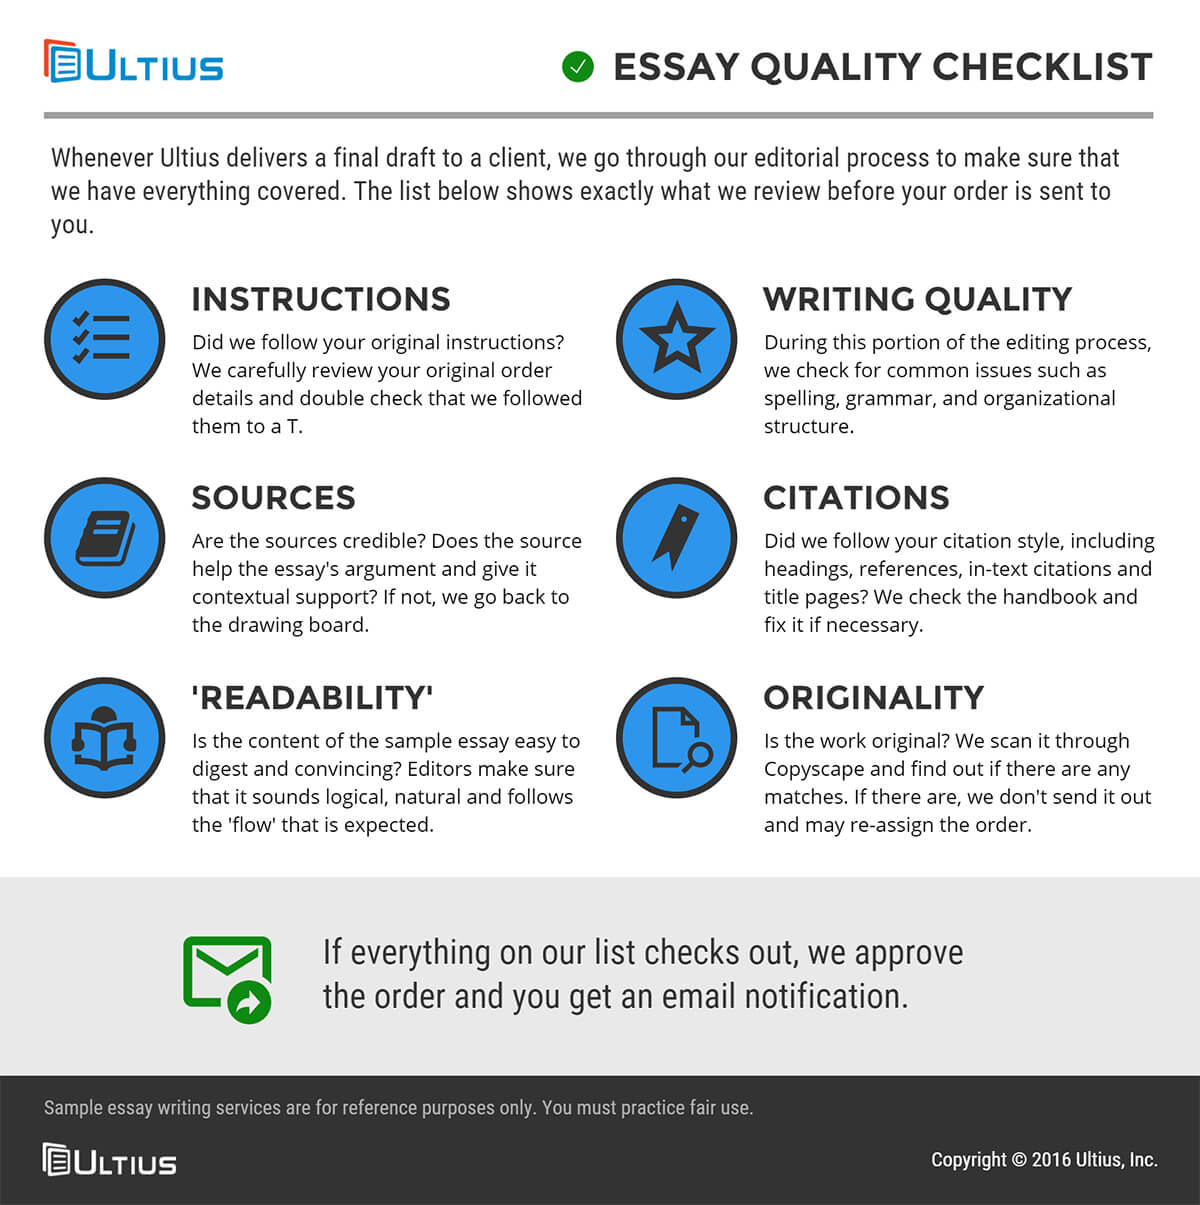 Essay About Bullying In School Quality Checklist When You Buy An Essay From Ultius Euthanasia Pros Essay also Satire Essay Topics Buy An Essay Online From Our Trusted Writing Service  Ultius The Importance Of Voting Essay